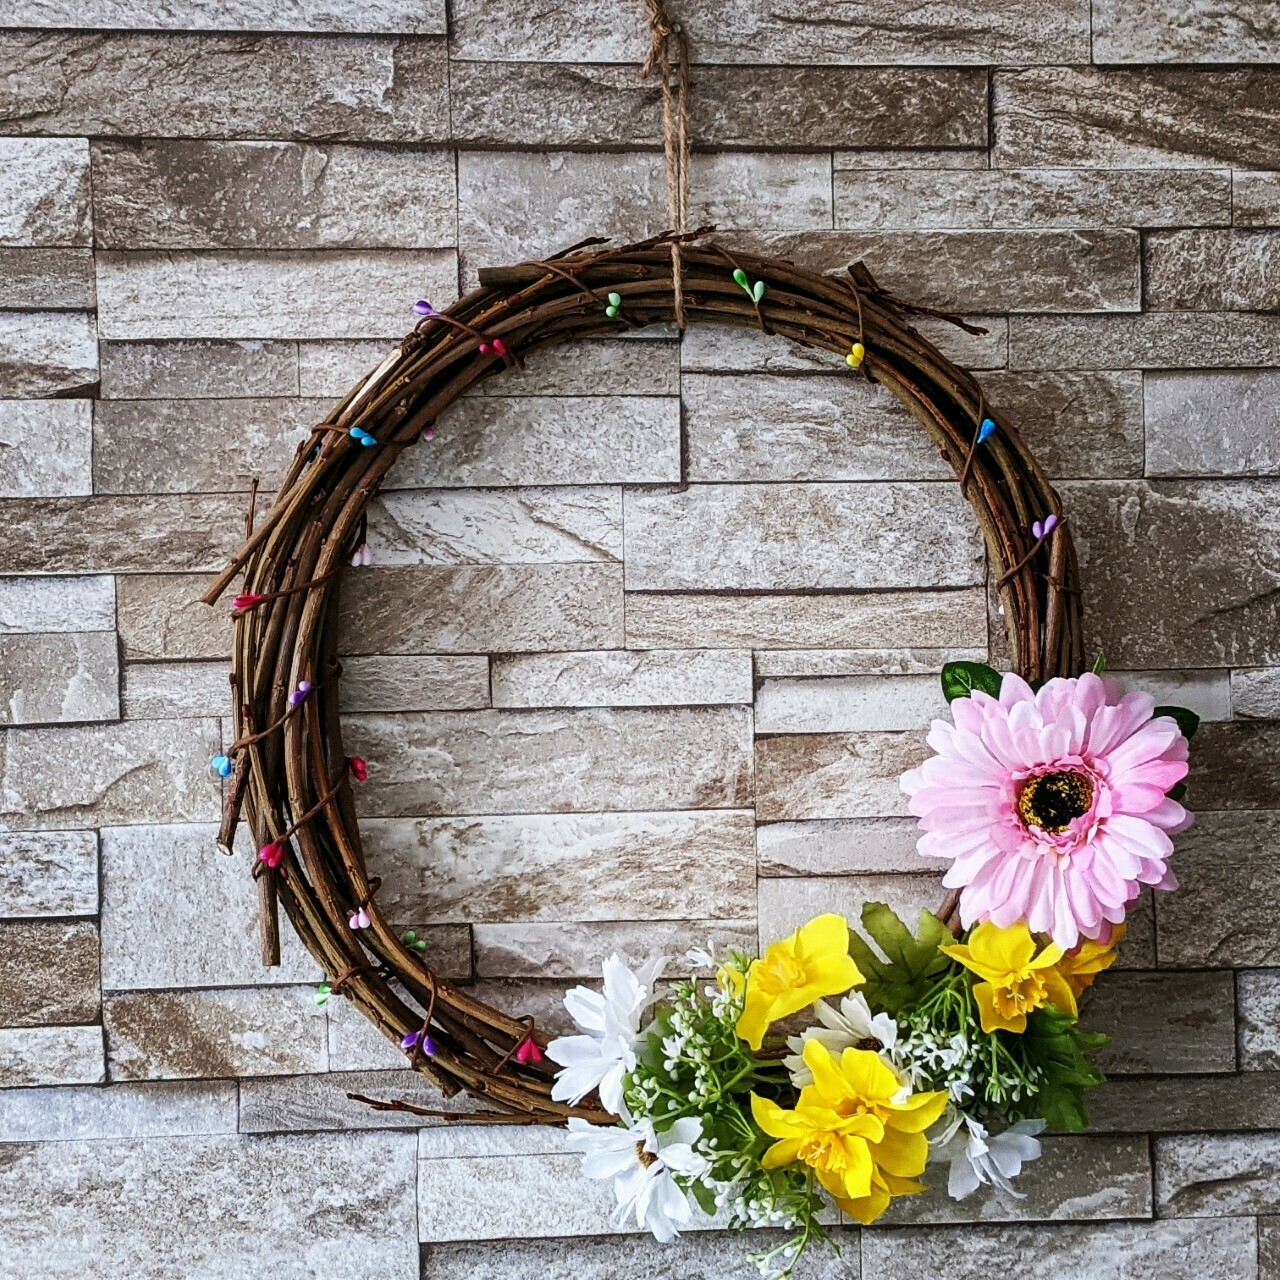 Spring willow wreath kit with pips and spring flowers